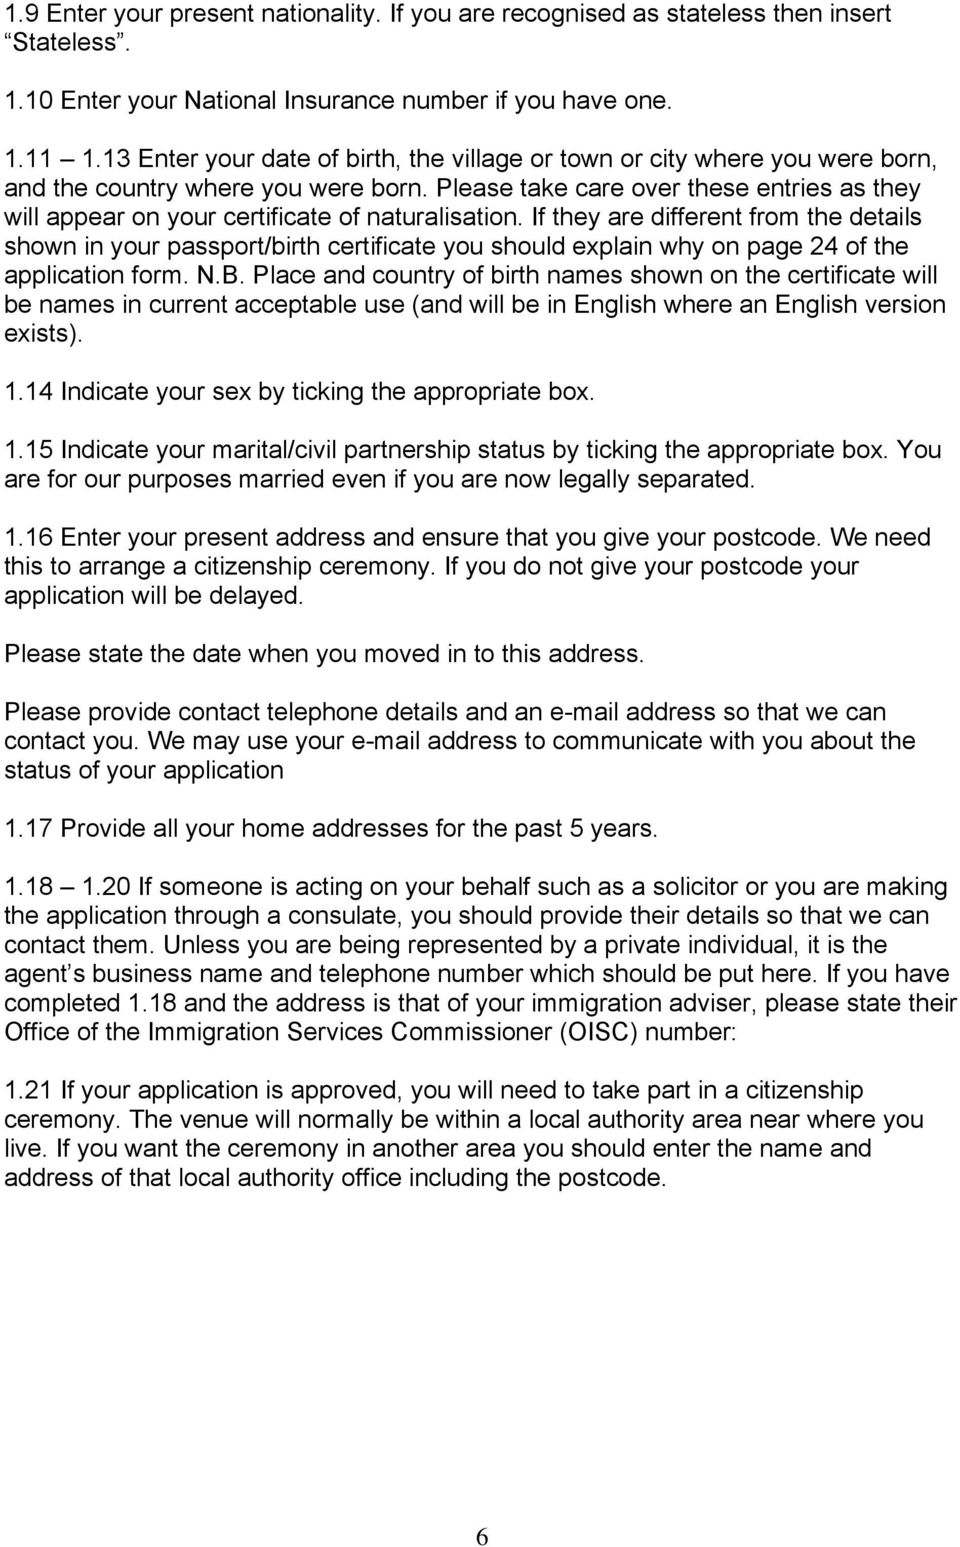 Guide AN. Naturalisation as a British citizen A guide for applicants ...